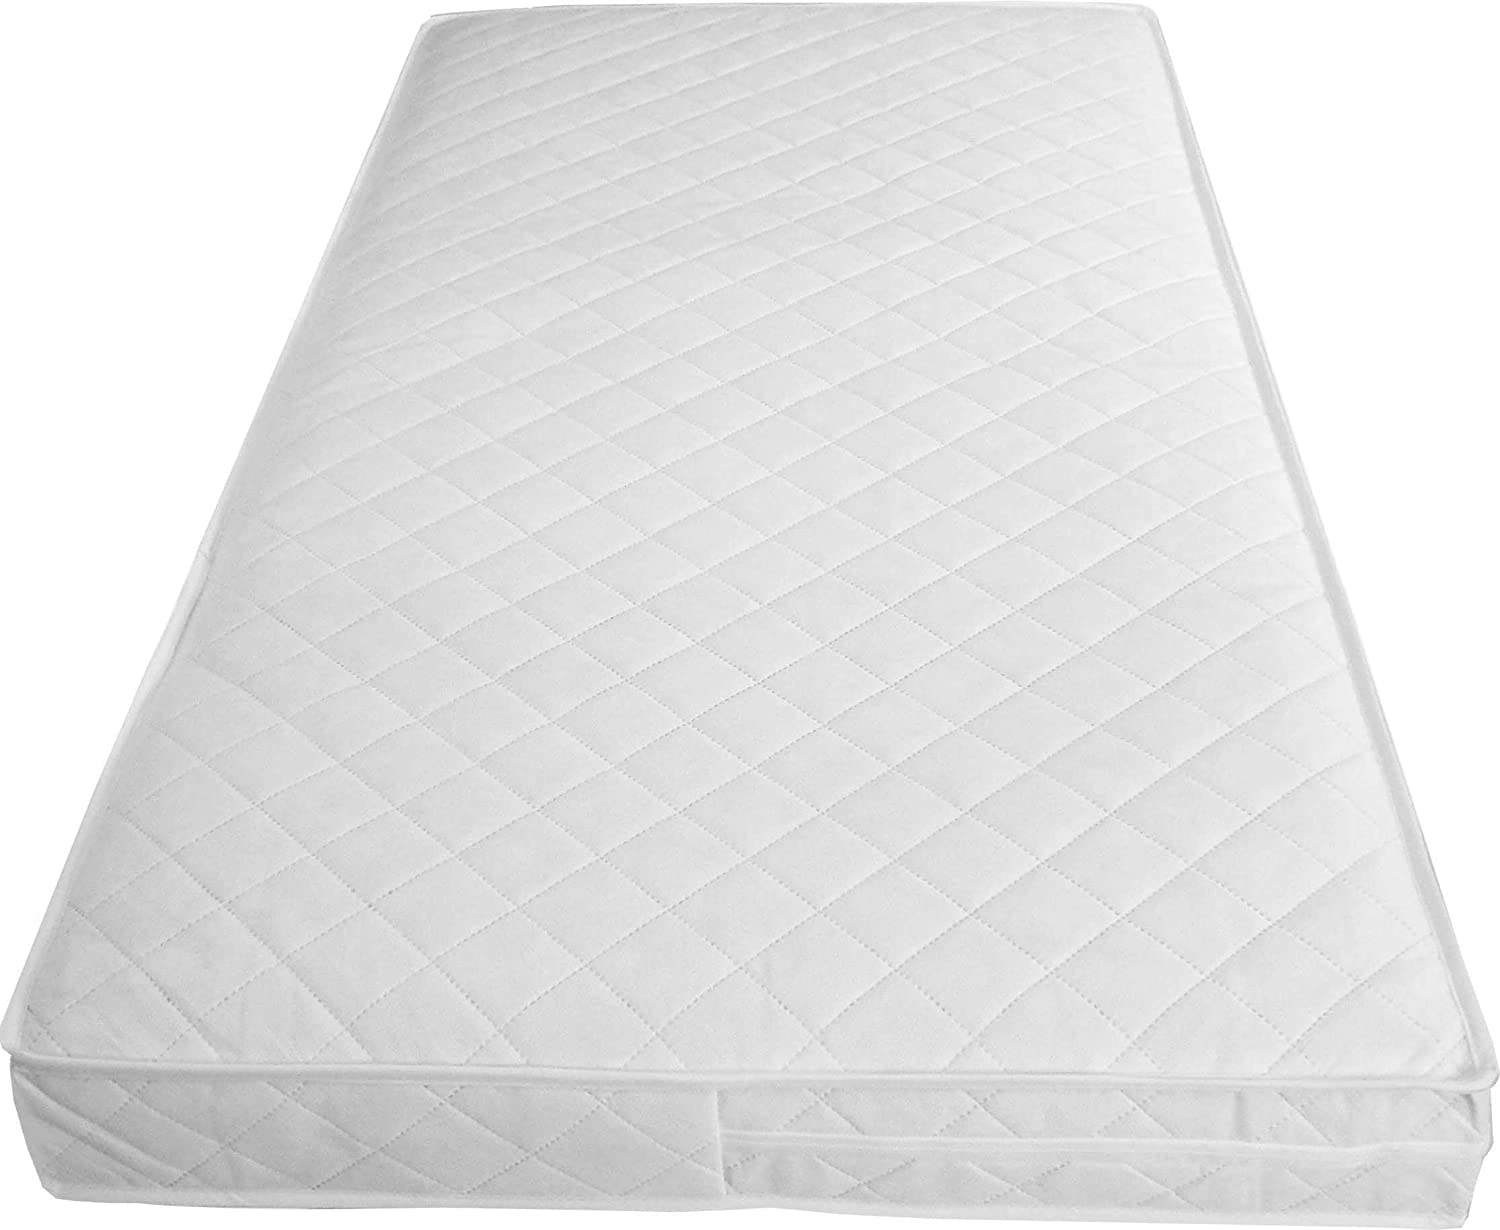 mother nurture luxury spring cot bed mattress with tape edges 140x70x10cm thick fits mothercare and mamas u0026 papas sizes amazoncouk baby - Spring Mattress